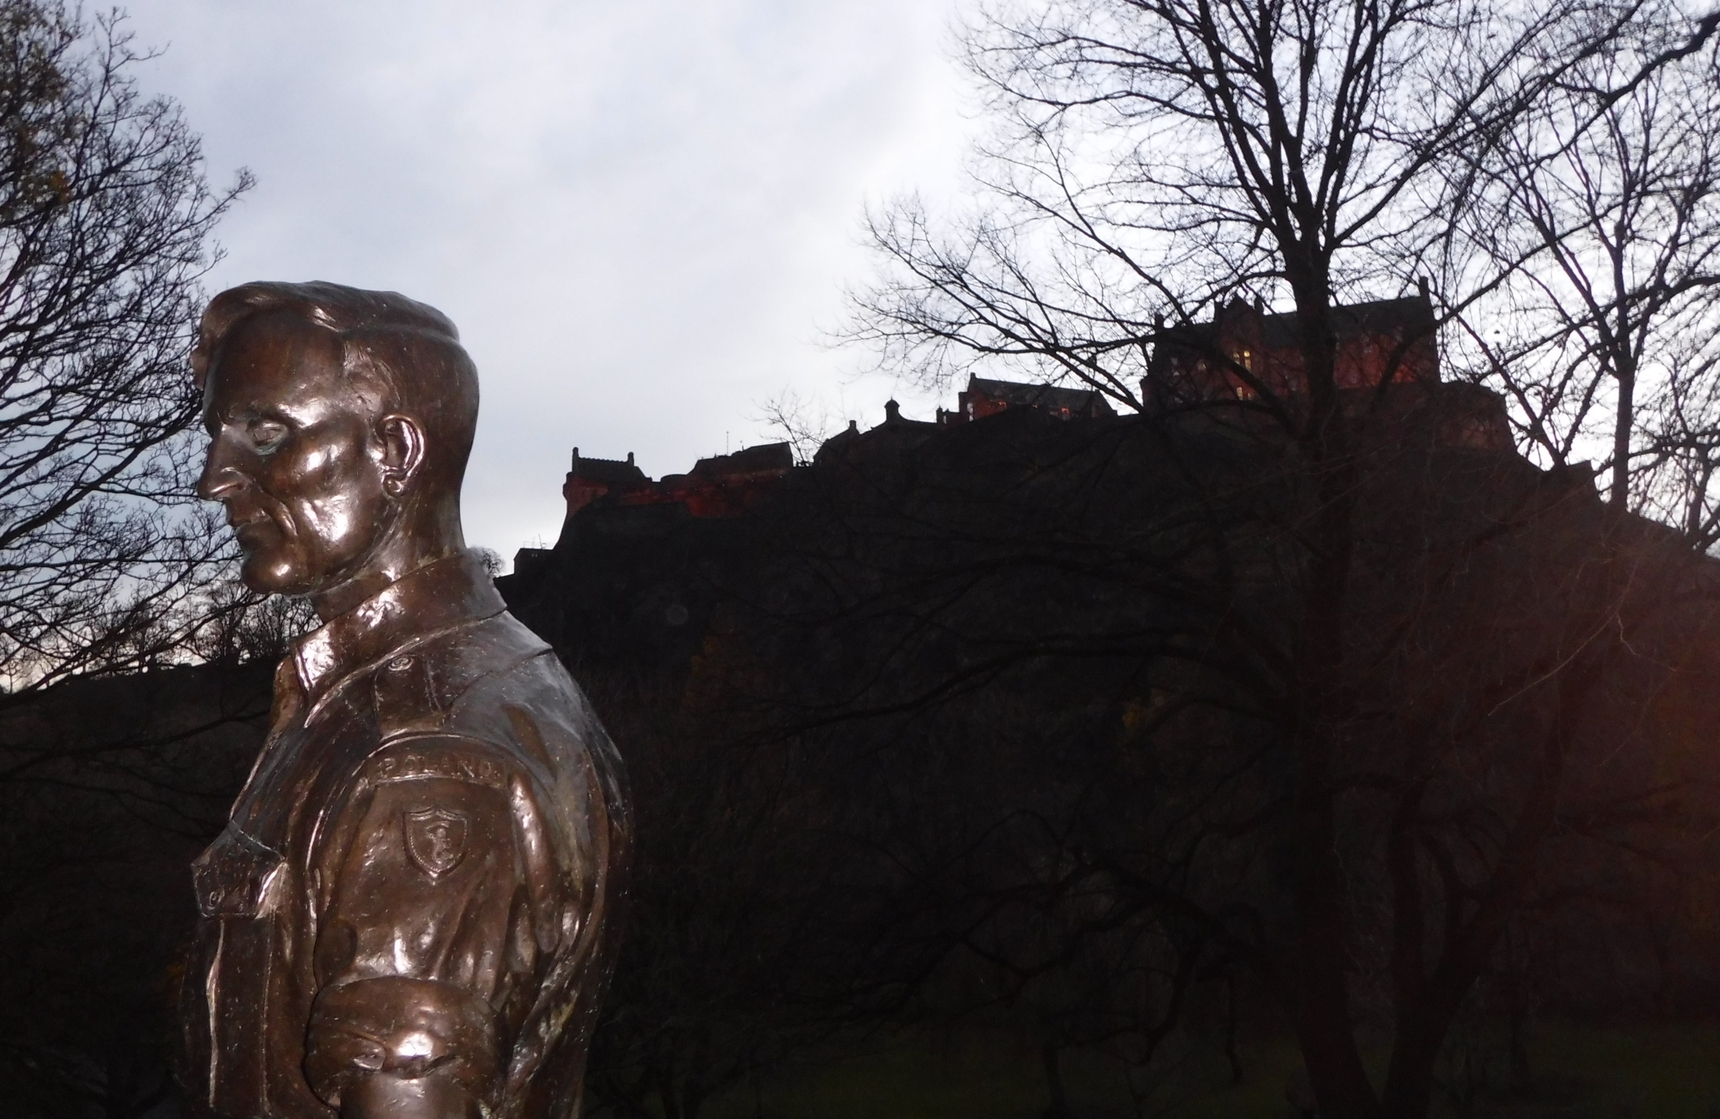 The witnesses. The part of Wojtek's the Bear Monument in Princess  Gardens with Edinburgh Castle in the background.